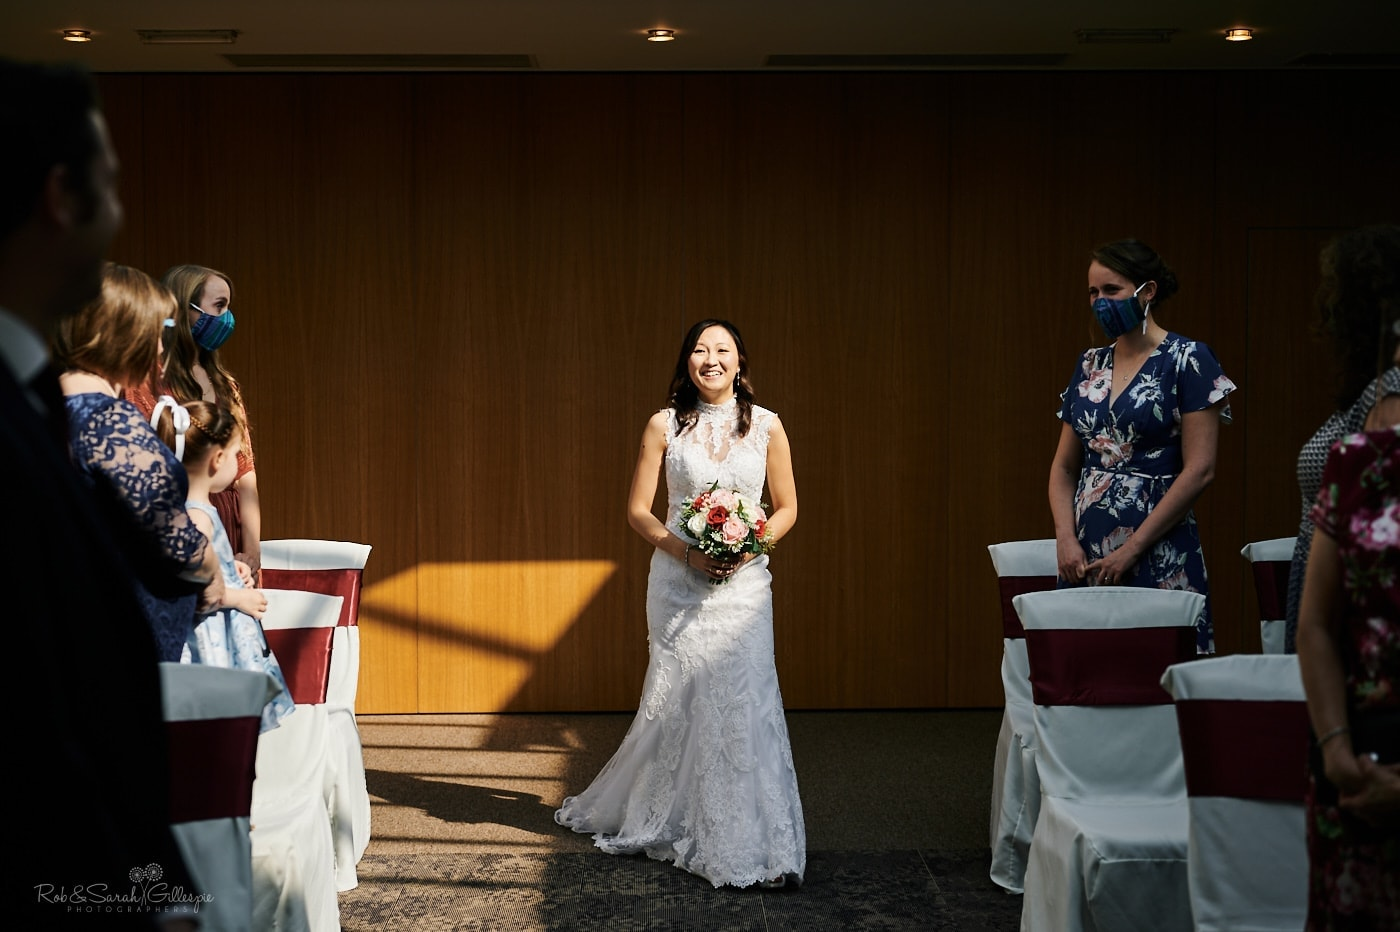 Bride enters Covid wedding ceremony at Mallory Court in strong light